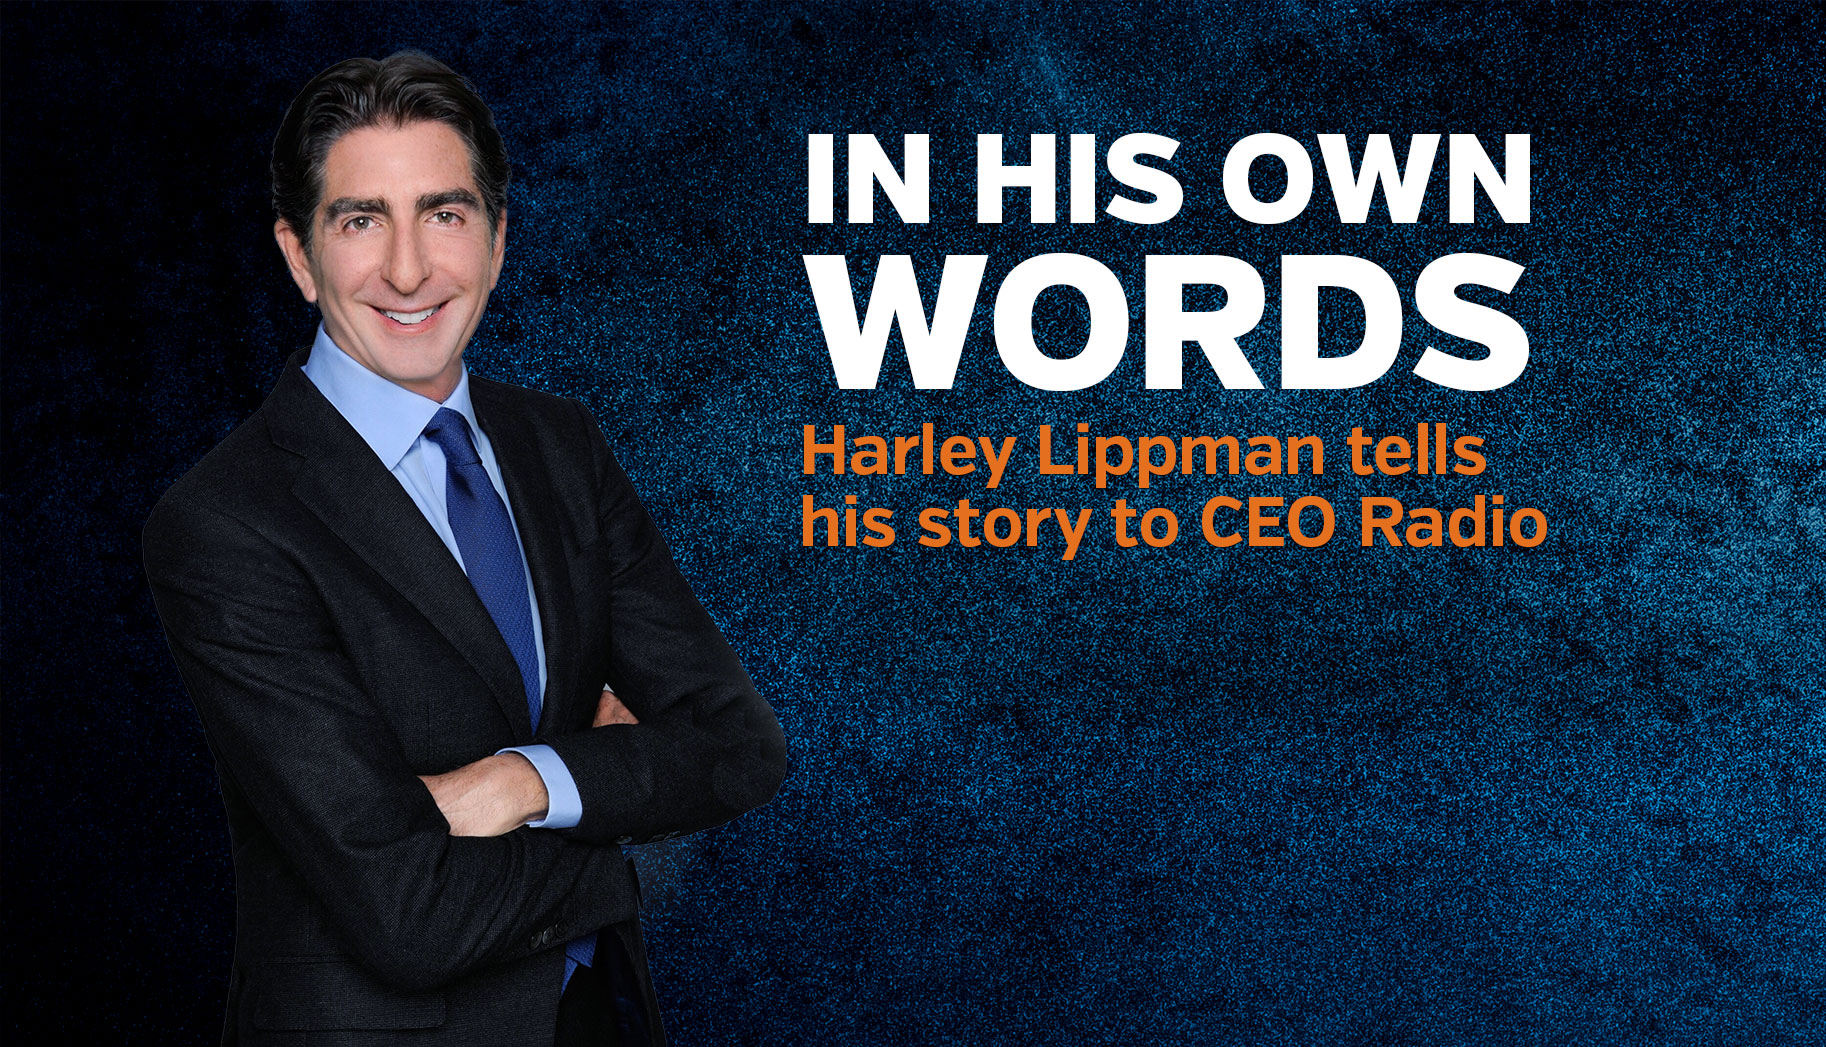 CEO Radio: Who is This Guy Harley Lippman?